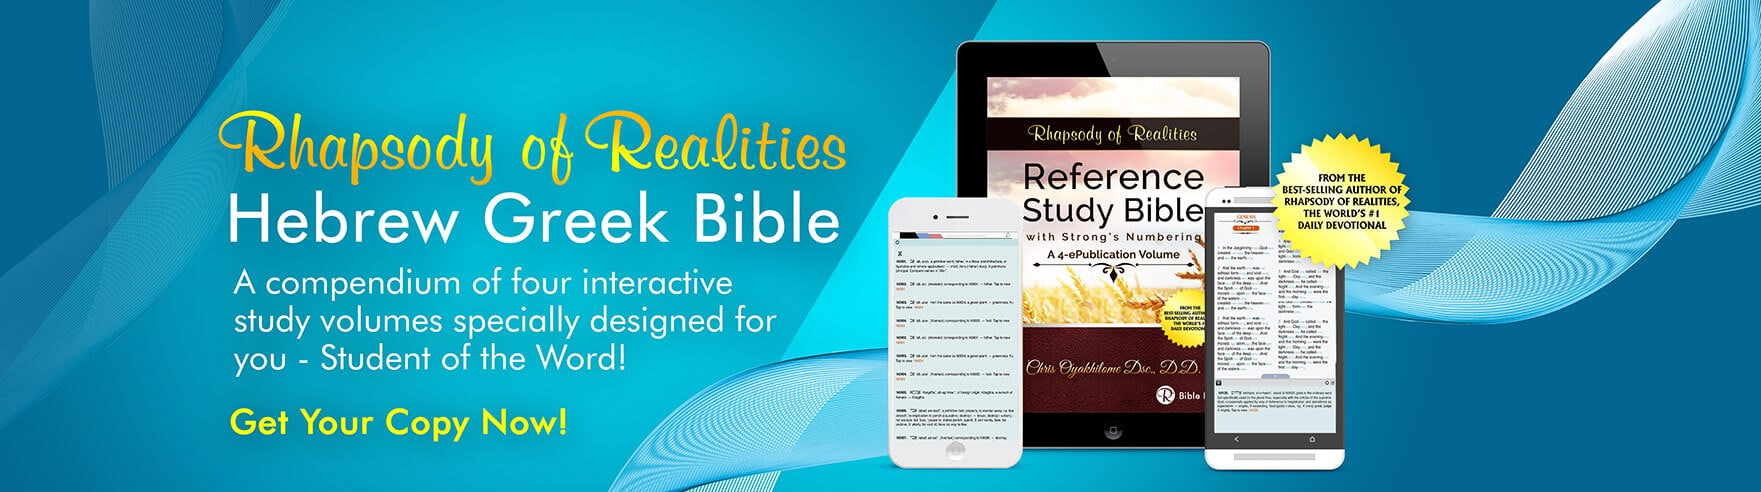 DOWNLOAD YOUR FREE RHAPSODY OF REALITIES PLUS STUDY BIBLE